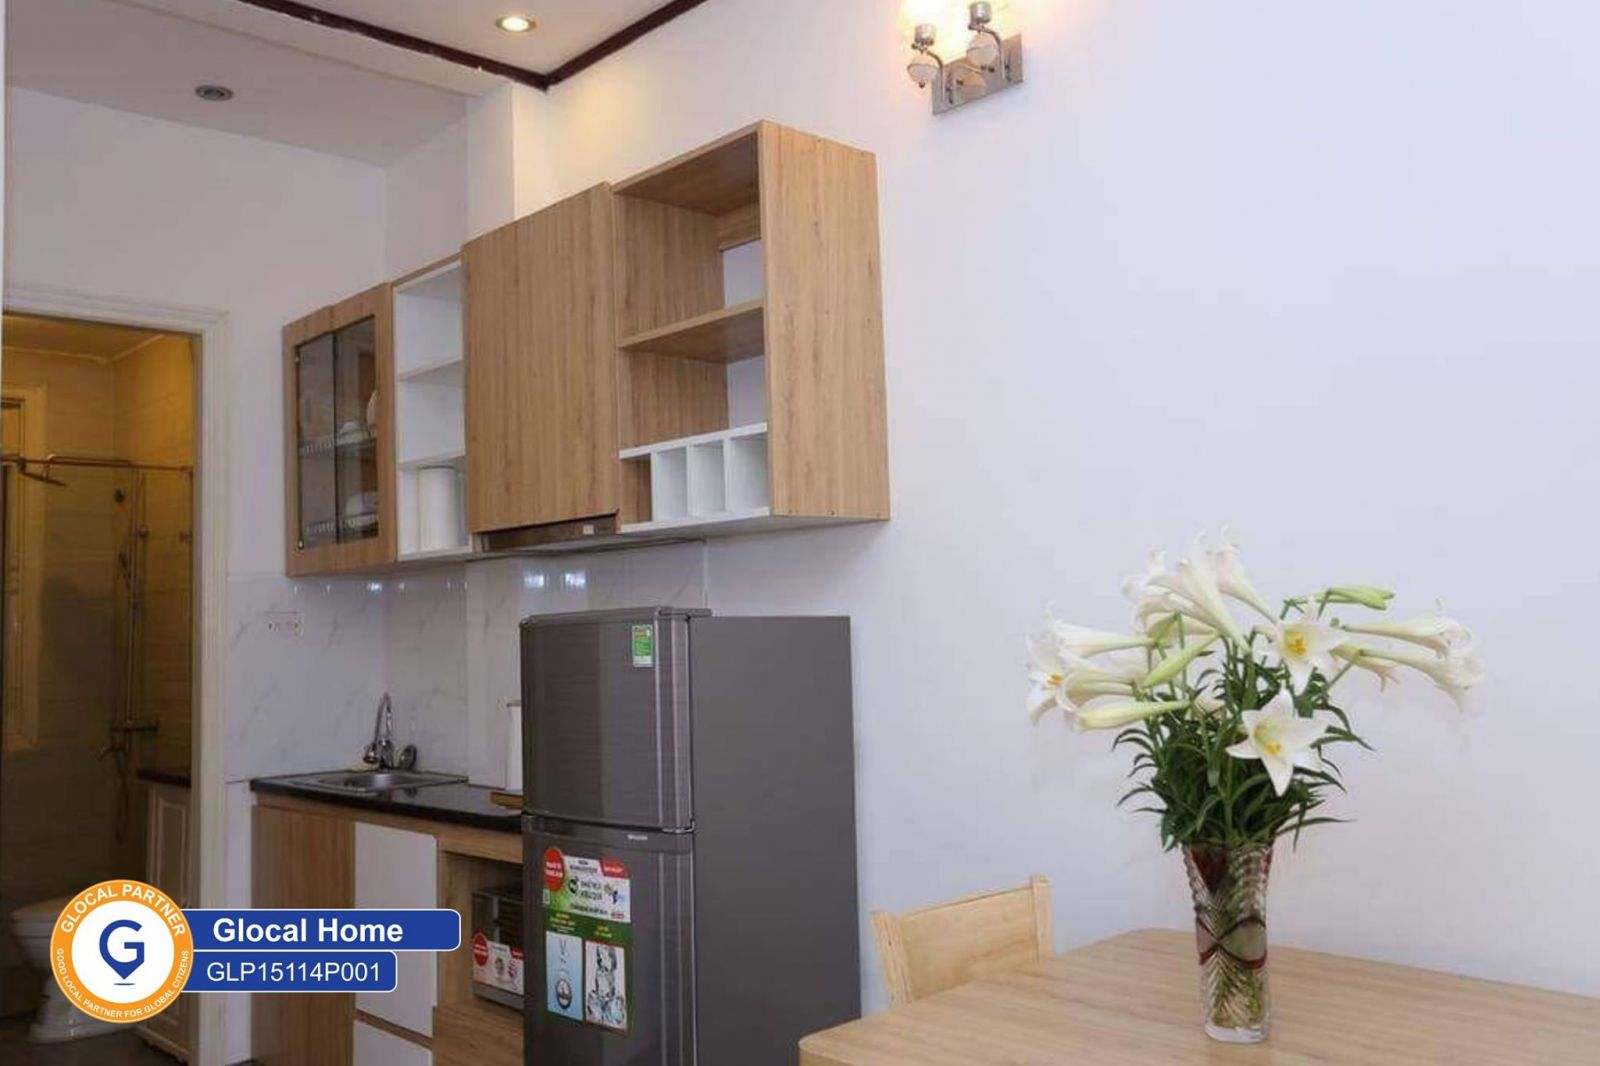 The studio apartment with a balcony has fully equipped in Tay Ho